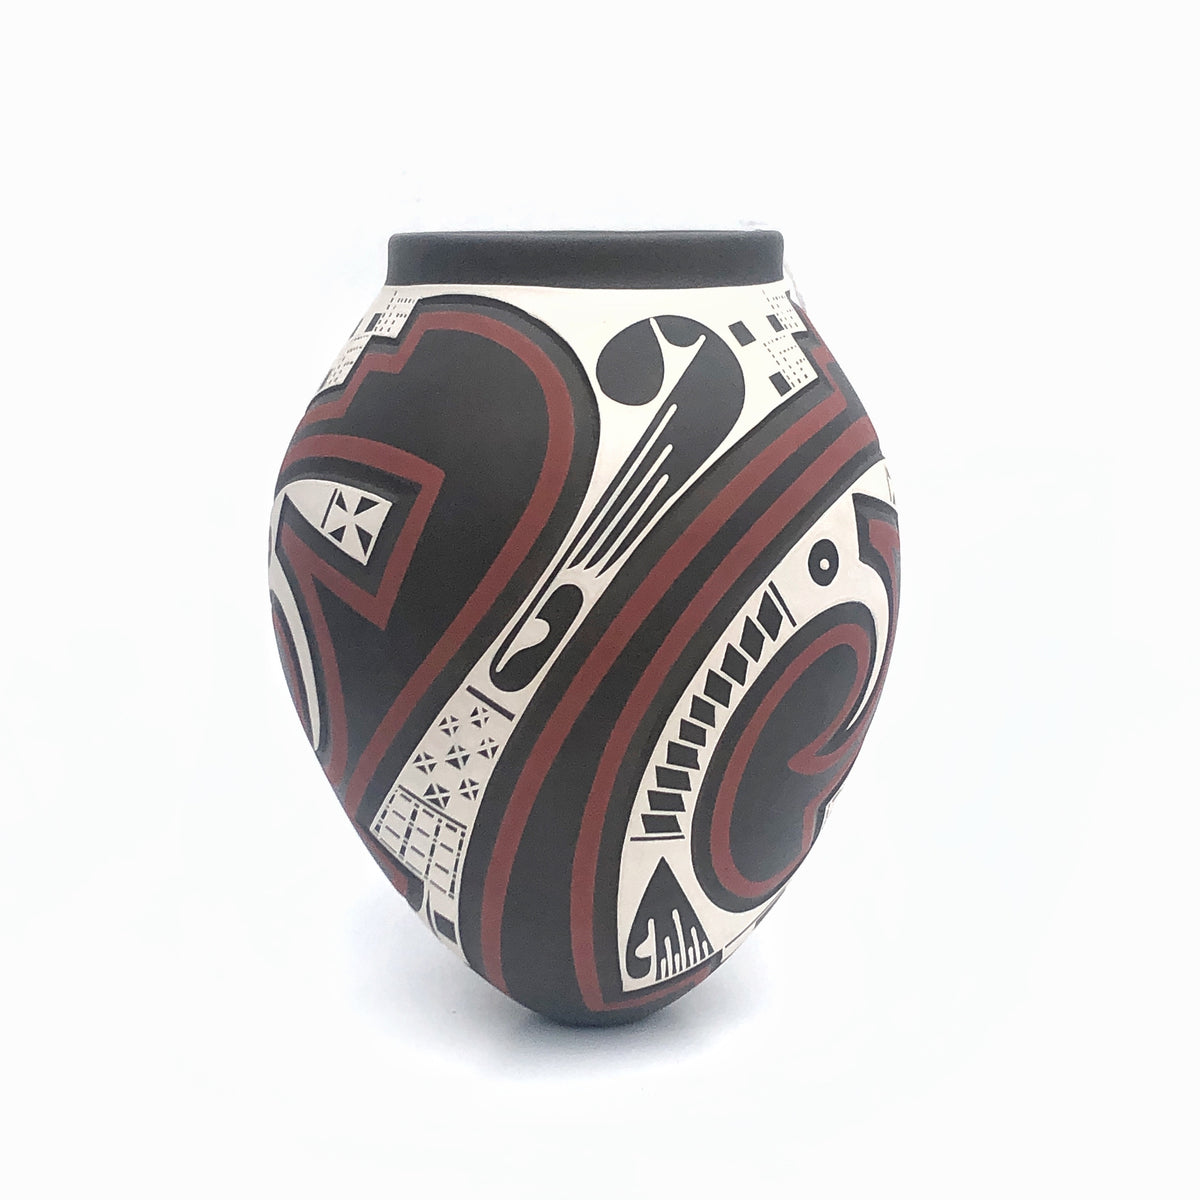 Engraved and Painted Pot by Lazaro Osuna Silveira